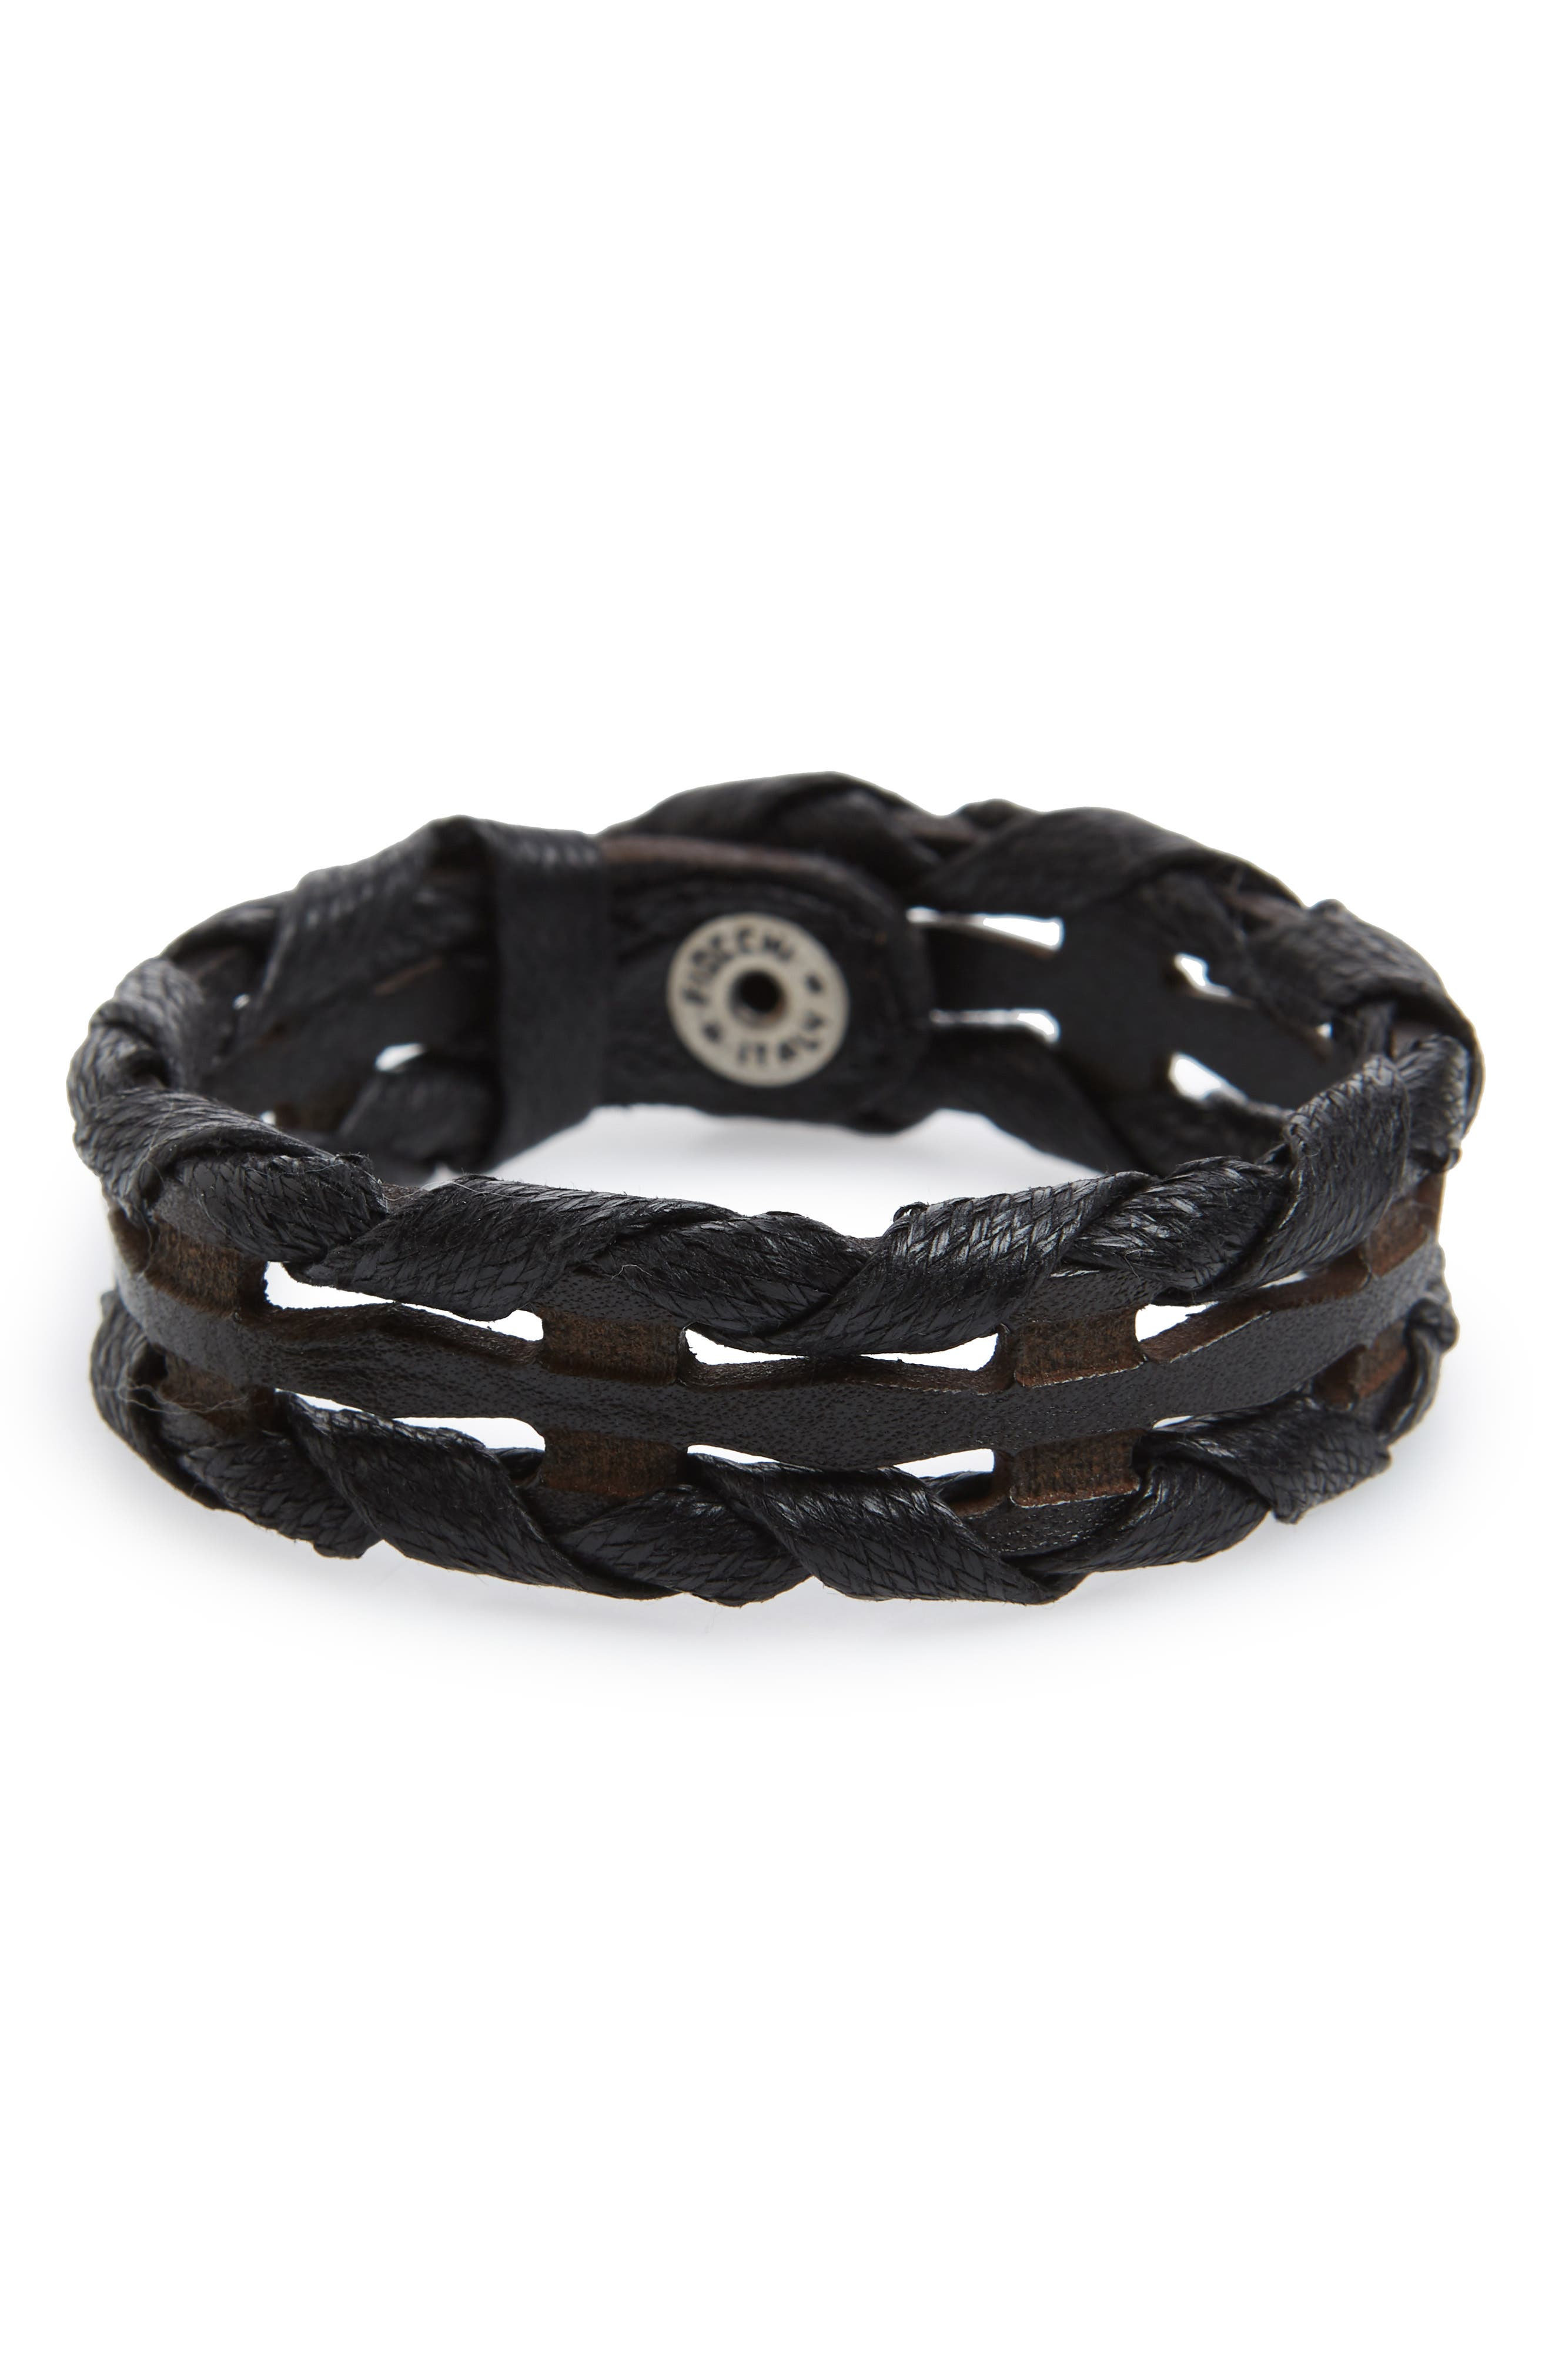 Main Image - Orciani Wax Woven Leather Bracelet